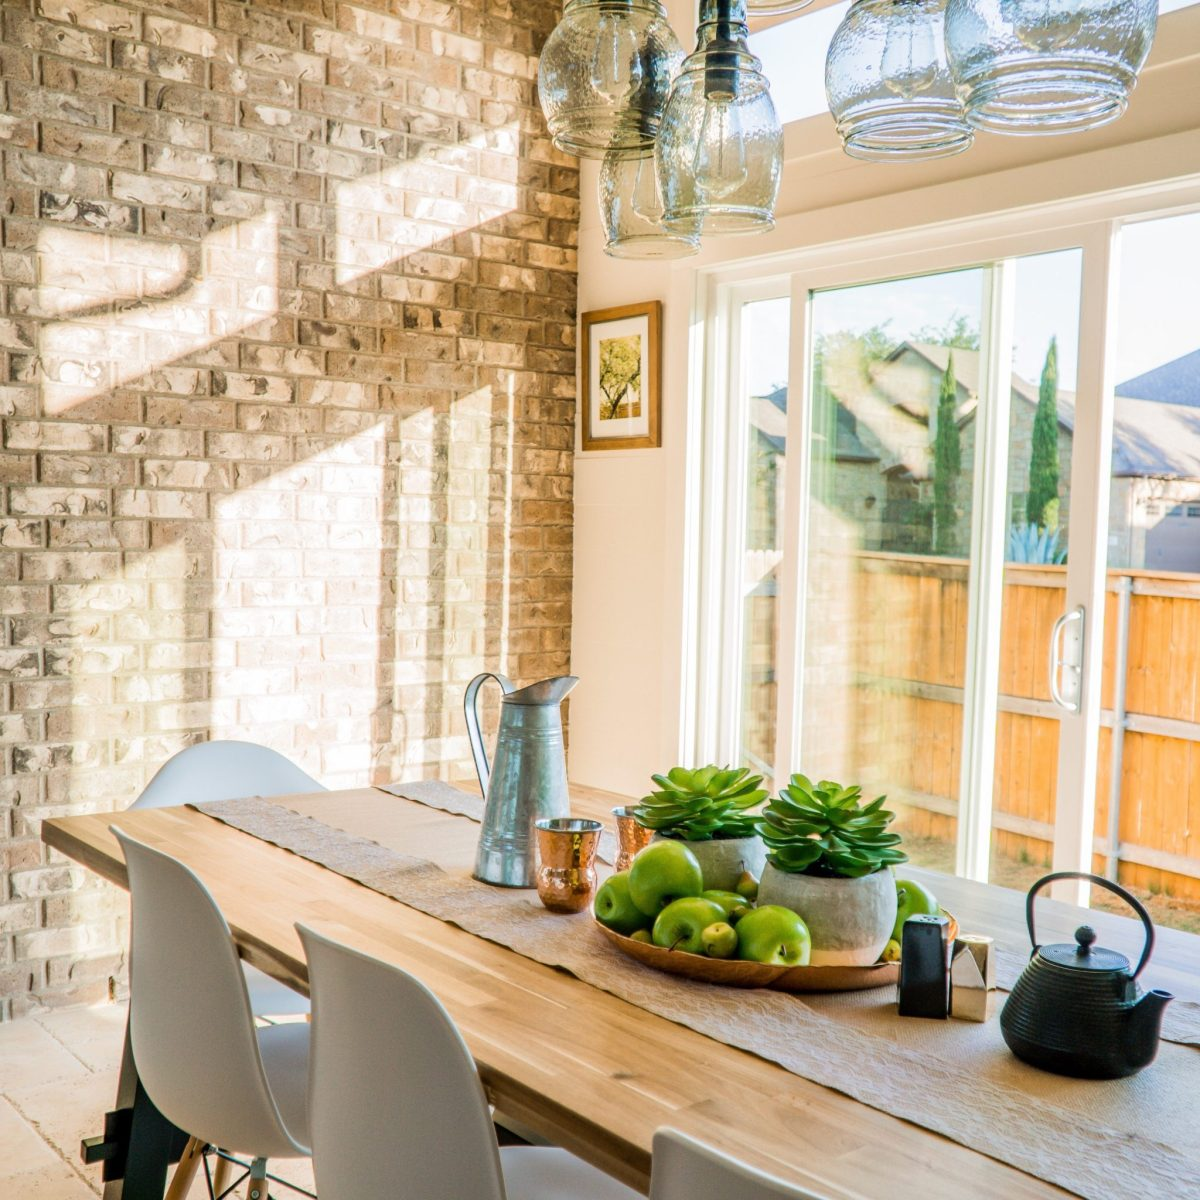 Help Prevent Sun Damaged Furnishings with Home Window Films - Home Window Tinting Services in Omaha, Nebraska